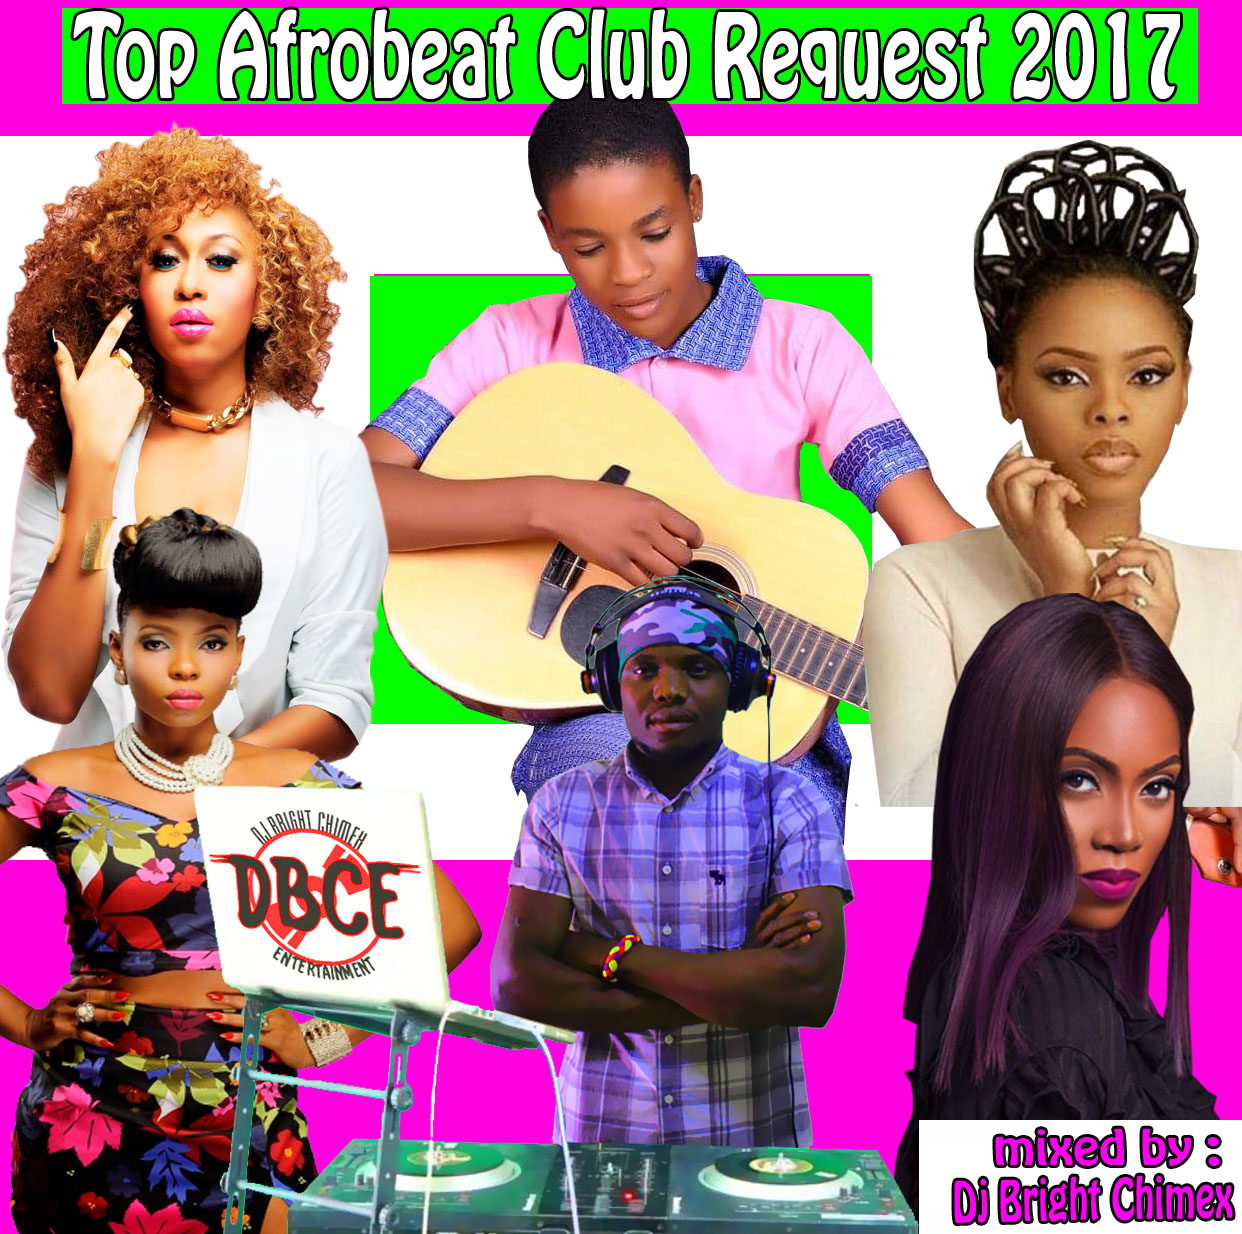 mixtape top afrobeat club request 2017 dj bright chimex. Black Bedroom Furniture Sets. Home Design Ideas